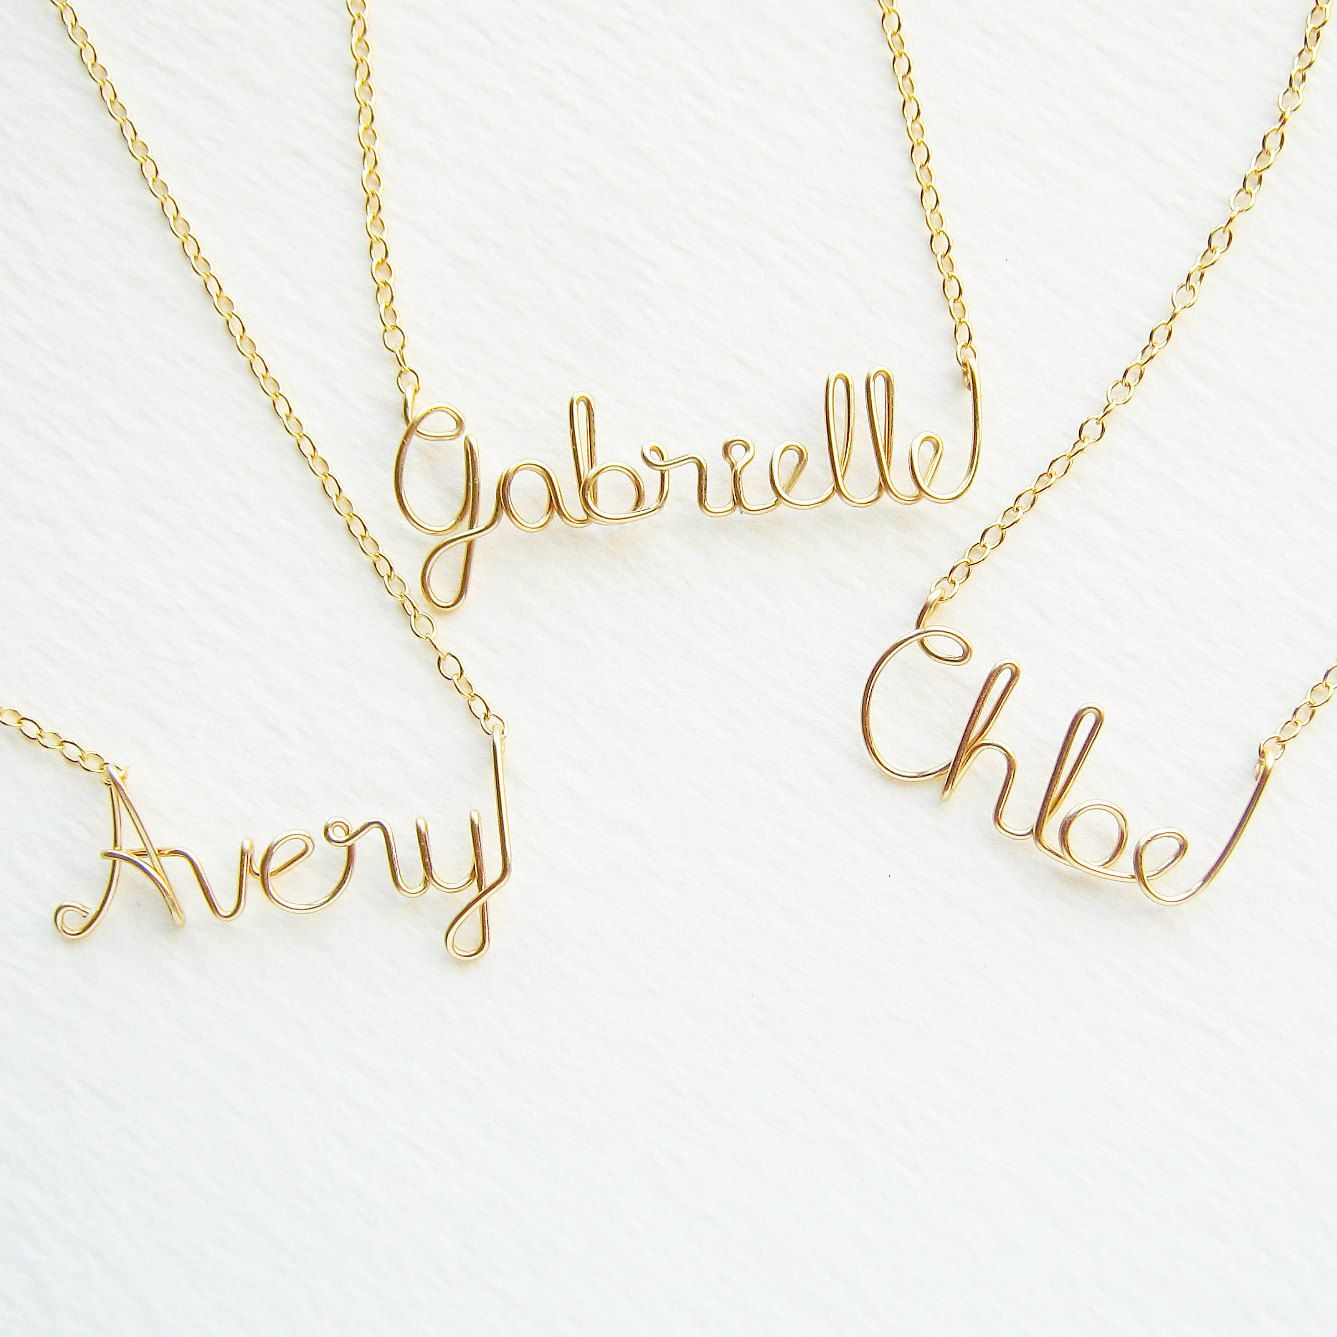 jewelry rings gifts necklace kids name centime kid names personalized mother custom more gift with